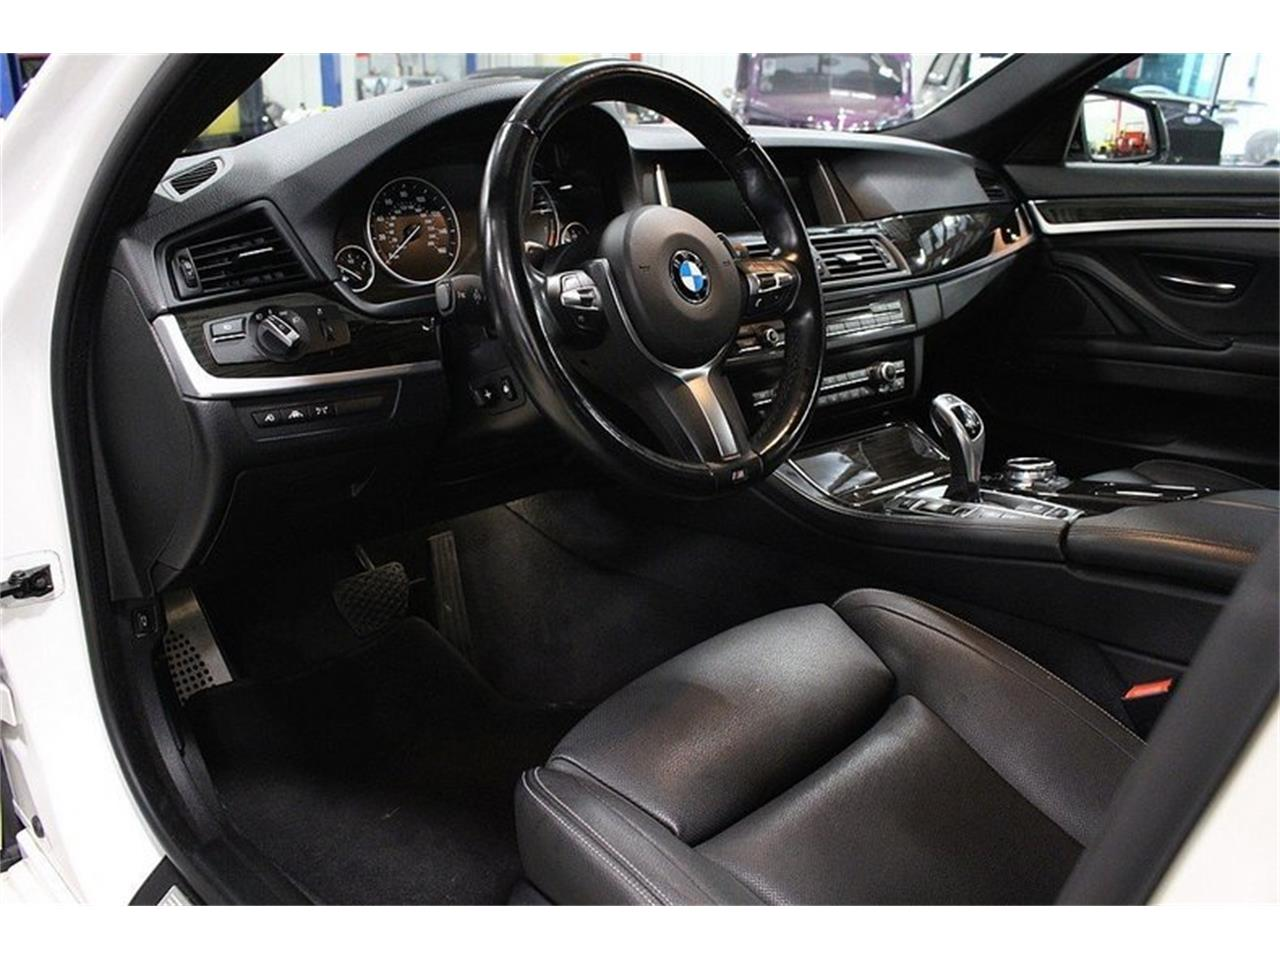 Large Picture of '14 BMW 5 Series located in Kentwood Michigan - $34,900.00 Offered by GR Auto Gallery - M41M